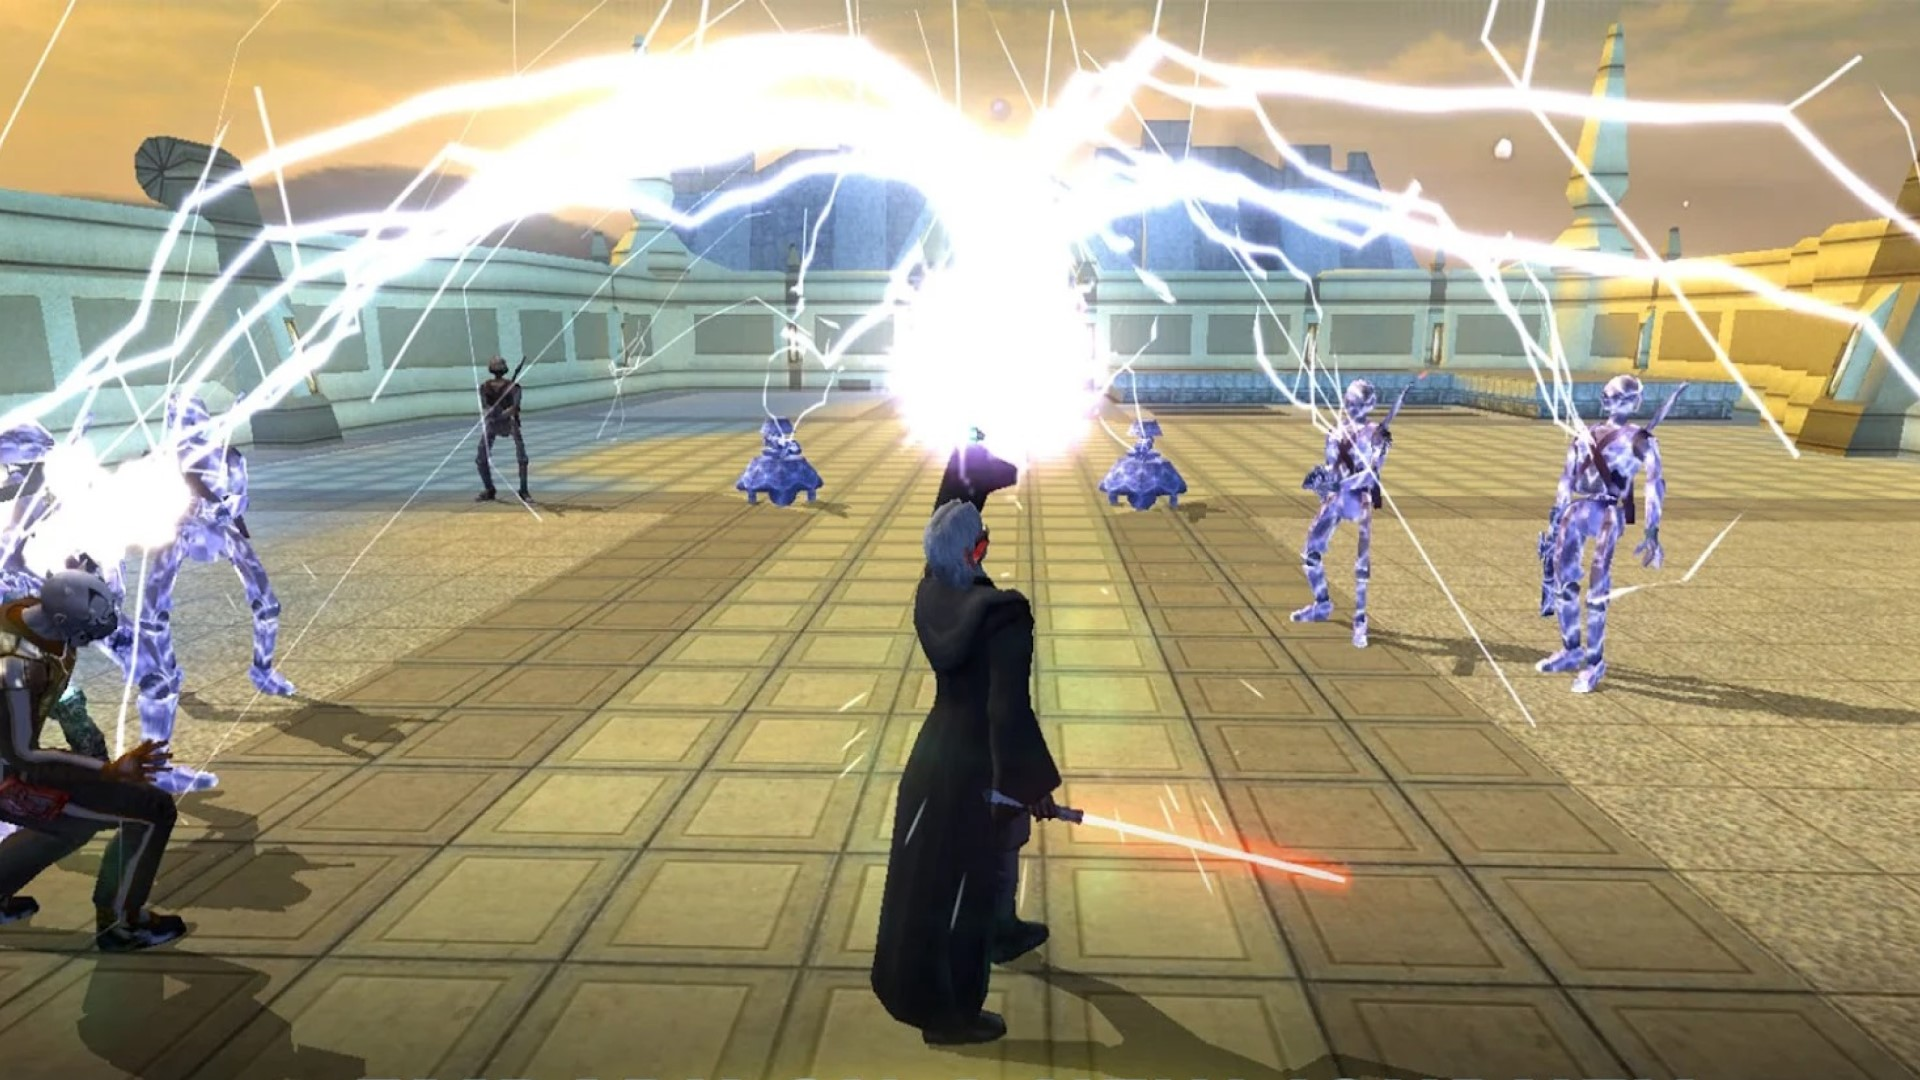 Star wars knights of the old republic 2 game review slot machine game swf download